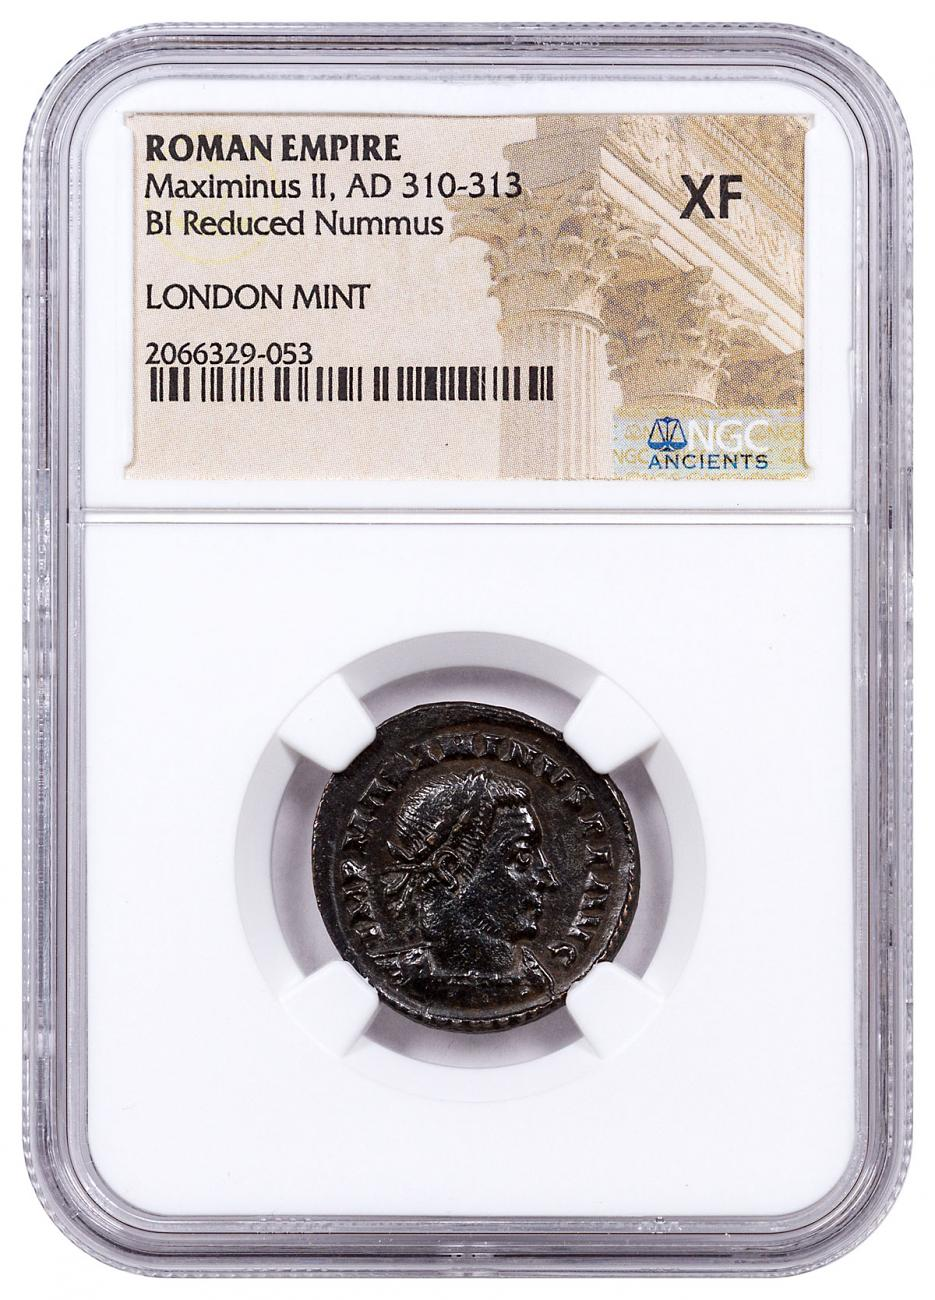 Roman Empire, Billon Nummus of Maximinus II (AD 311-313) - London Mint - NGC XF